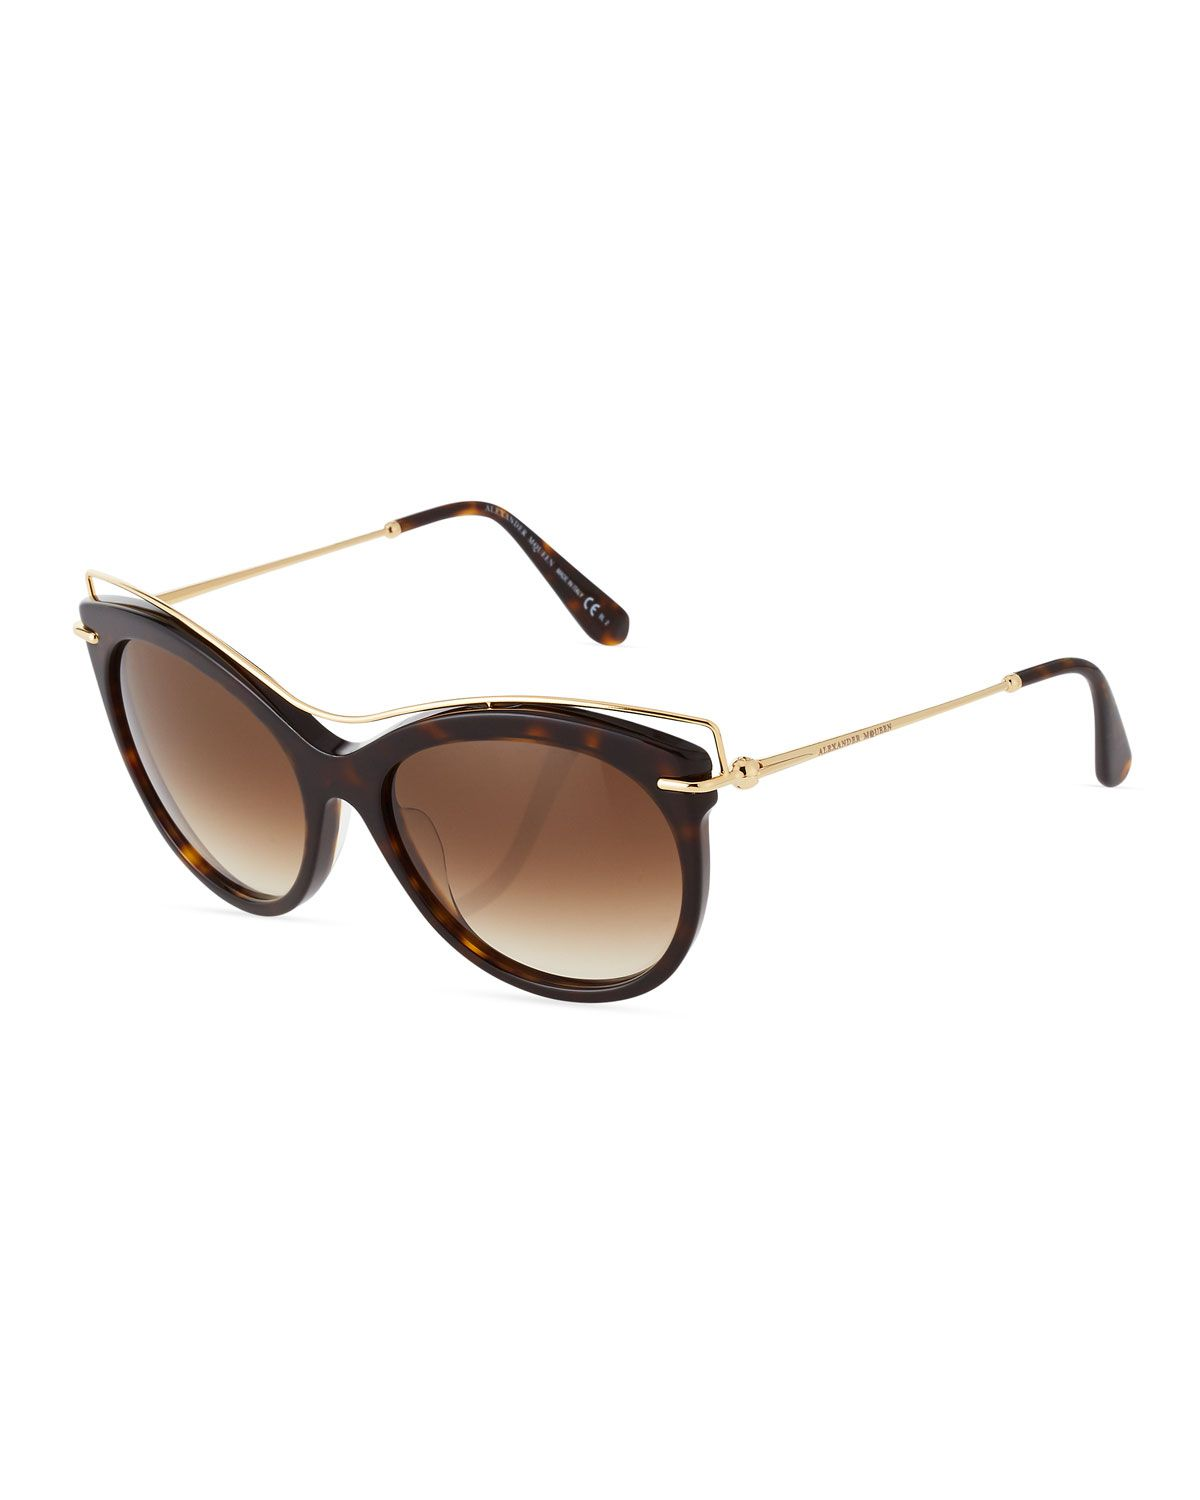 043bfd3e2c9 Alexander McQueen Acetatae   Metal Modified Cat-Eye Sunglasses